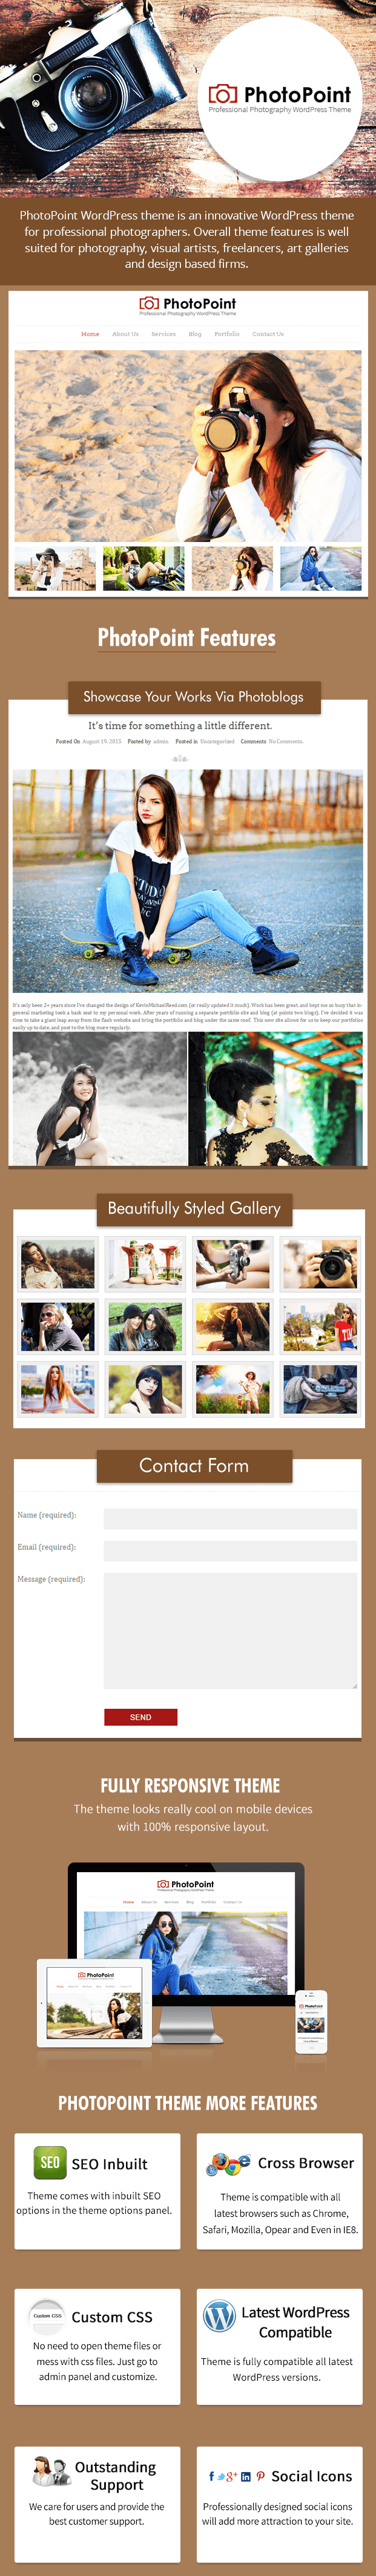 WordPress theme for professional photographer